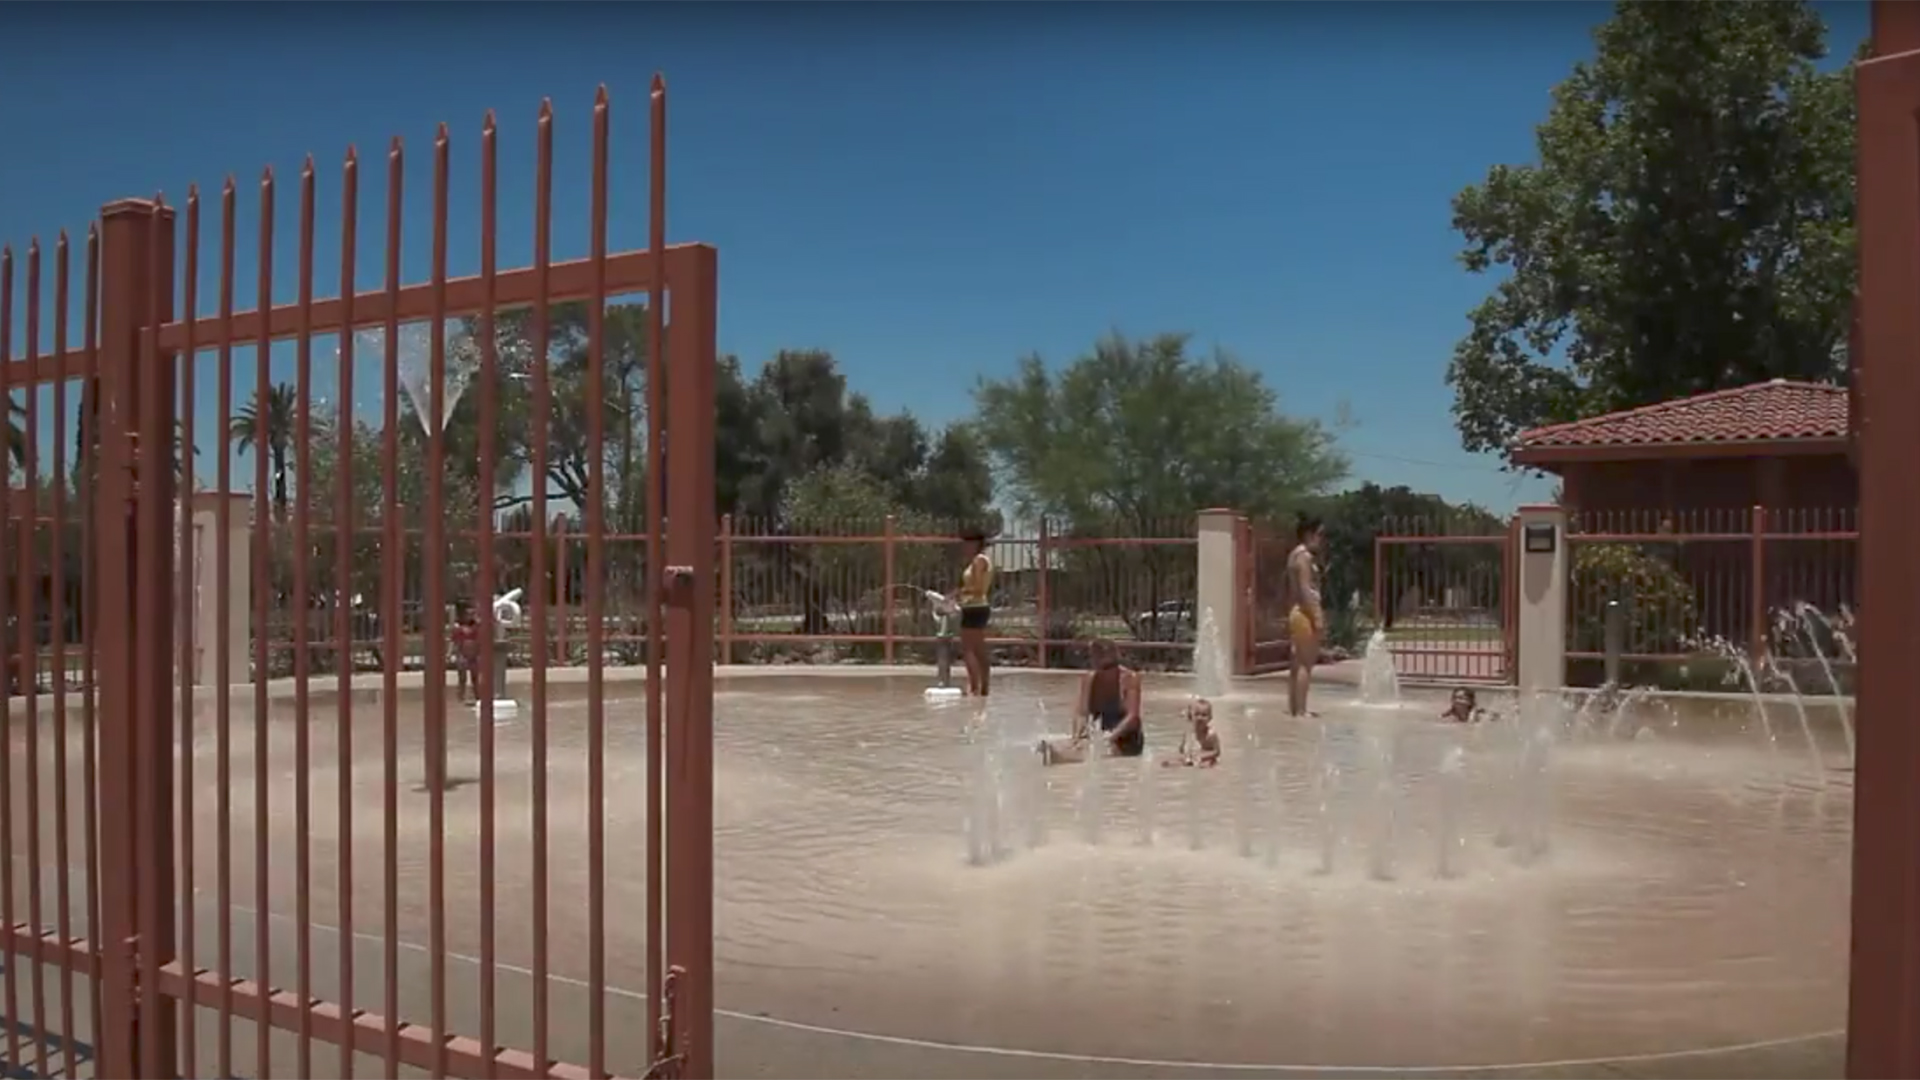 Children playing at a neighborhood splash pad.